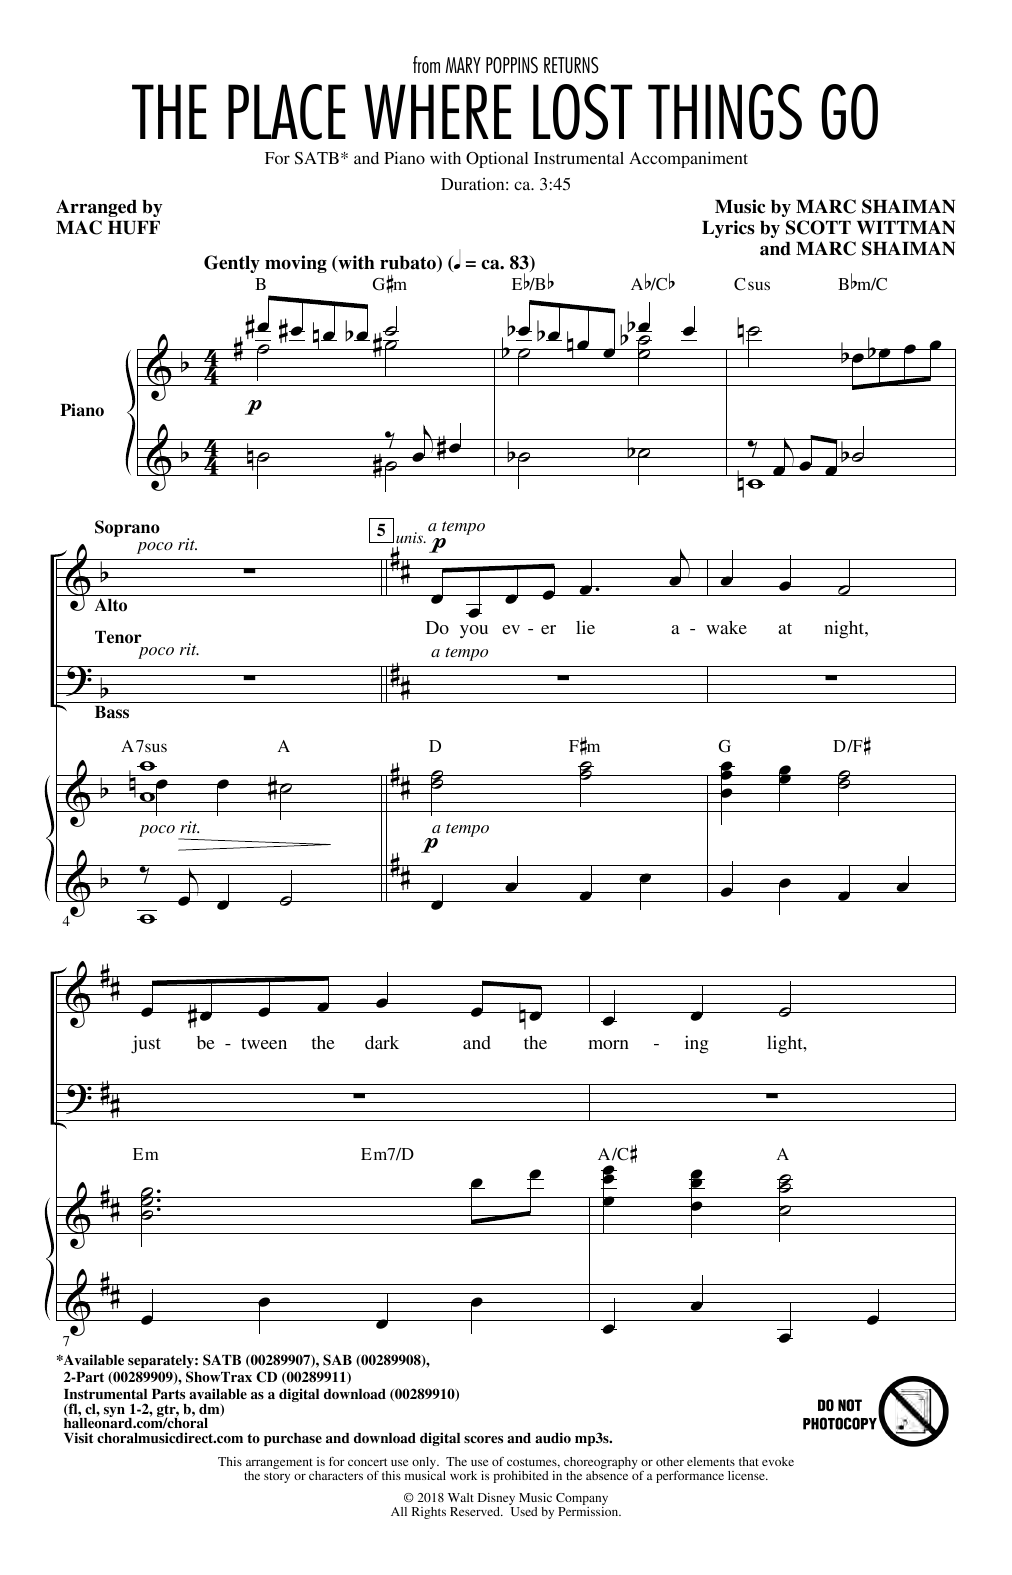 The Place Where Lost Things Go (from Mary Poppins Returns) (arr. Mac Huff) (SATB Choir)